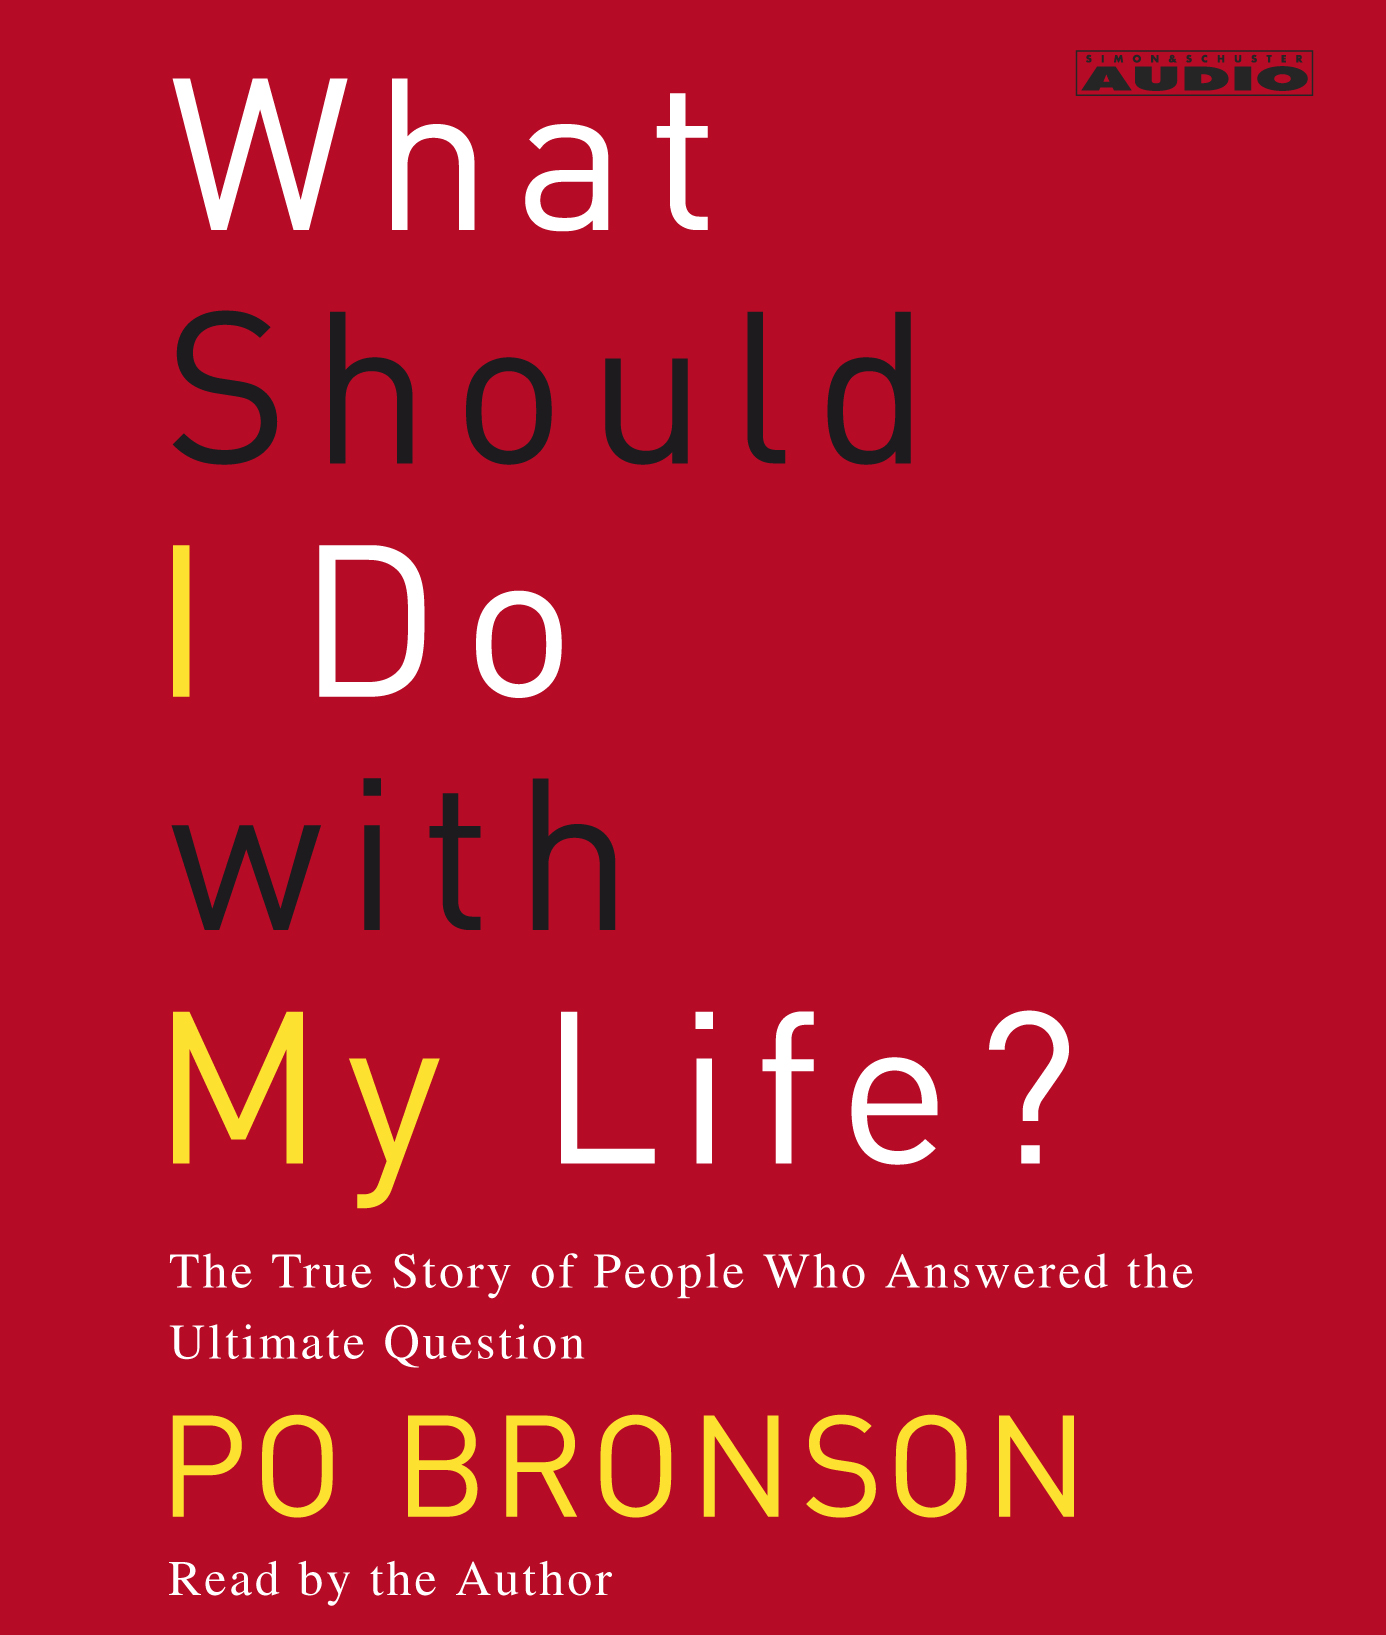 What Should I Do With My Life? Audiobook By Po Bronson. Best Online Photography Schools. Cosmetic Dentist Dallas Lightspeed Web Filter. Cosmetic Dental Beverly Hills. Current Savings Account Interest. Sql Server Transaction Log Sink Hole Florida. Schools For Chiropractic Auto Accident Claims. Four Year College Degree Luxury Hotel In Napa. Locksmith New Canaan Ct Vet Assistant Program